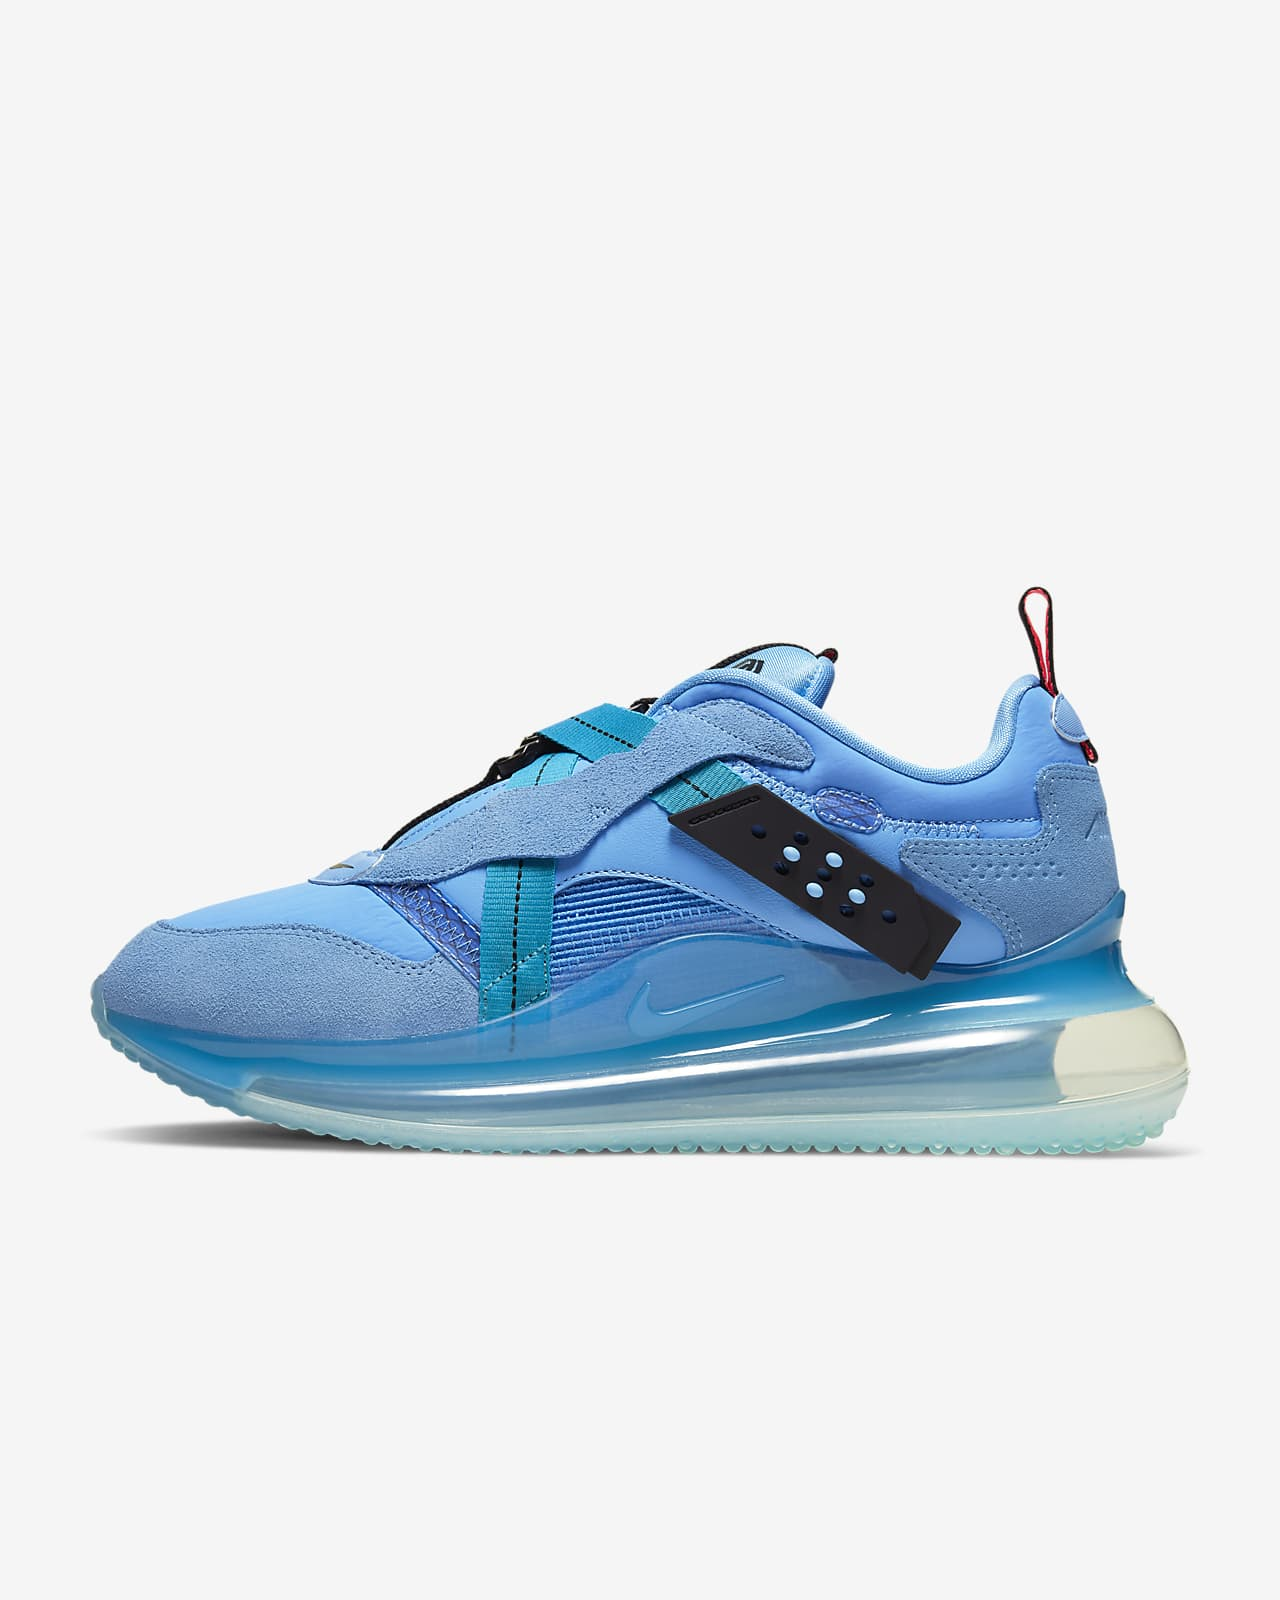 Nike Air Max 720 OBJ Slip Men's Shoe